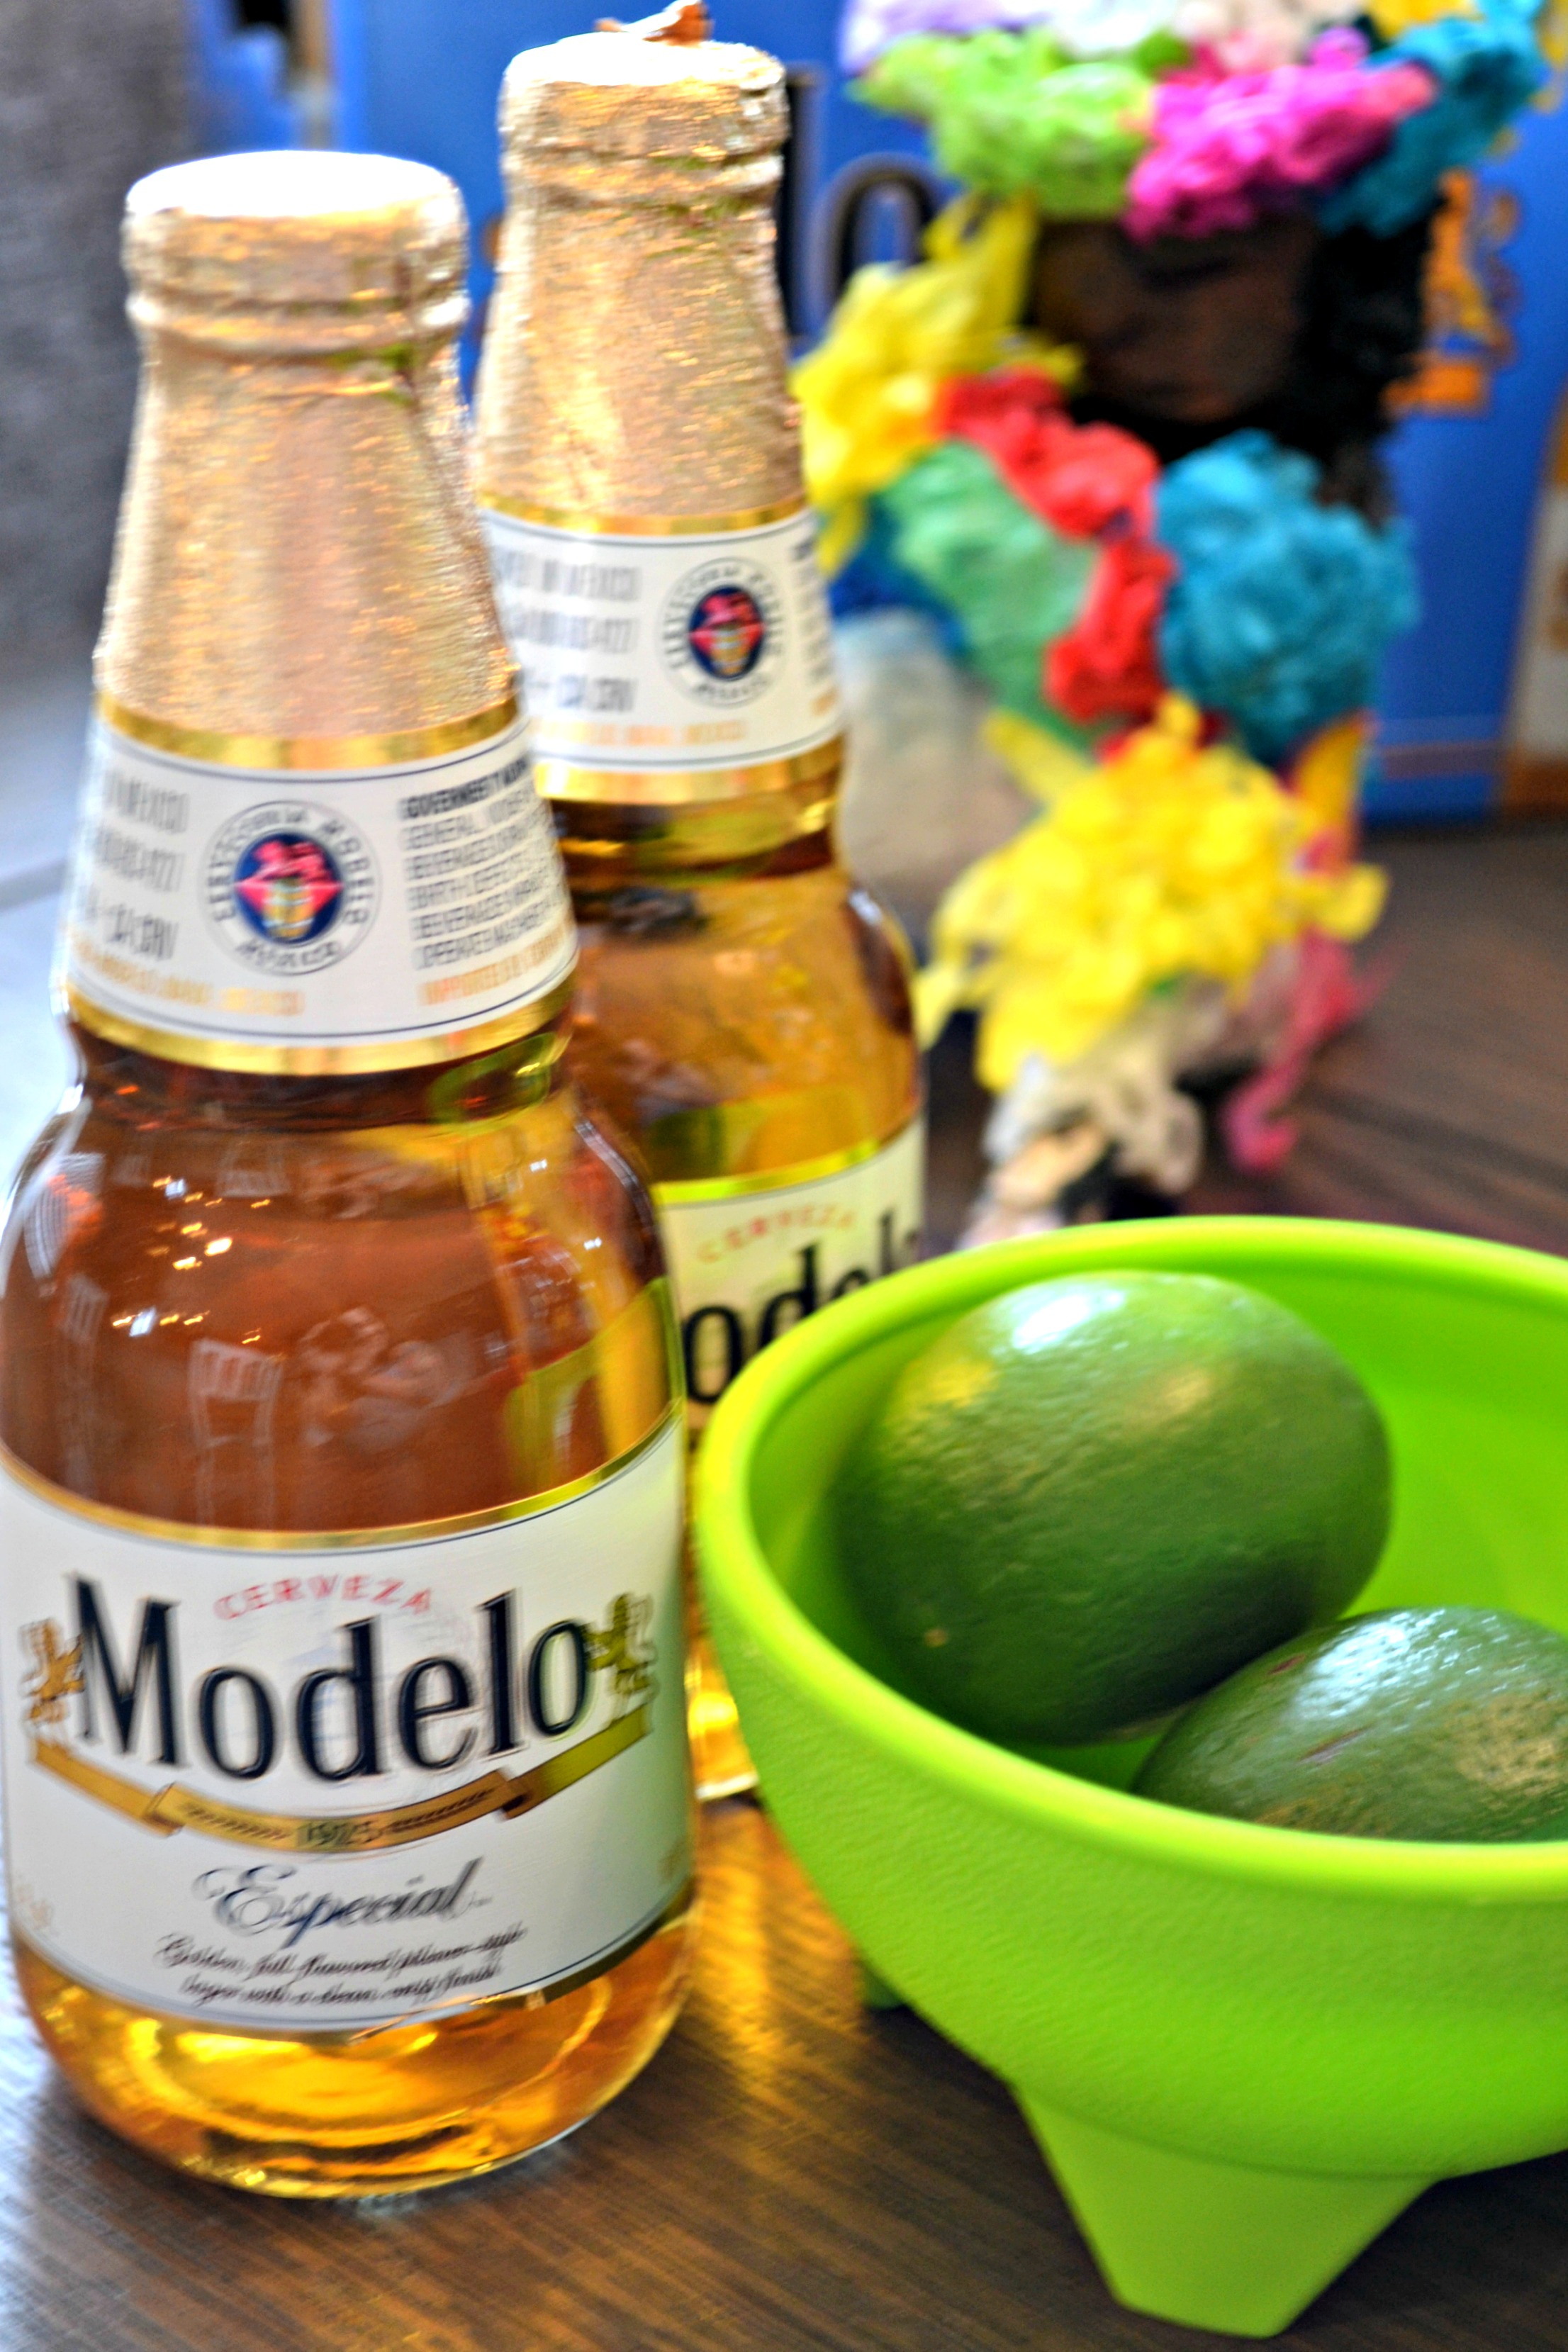 Modelo and Cinco De Mayo